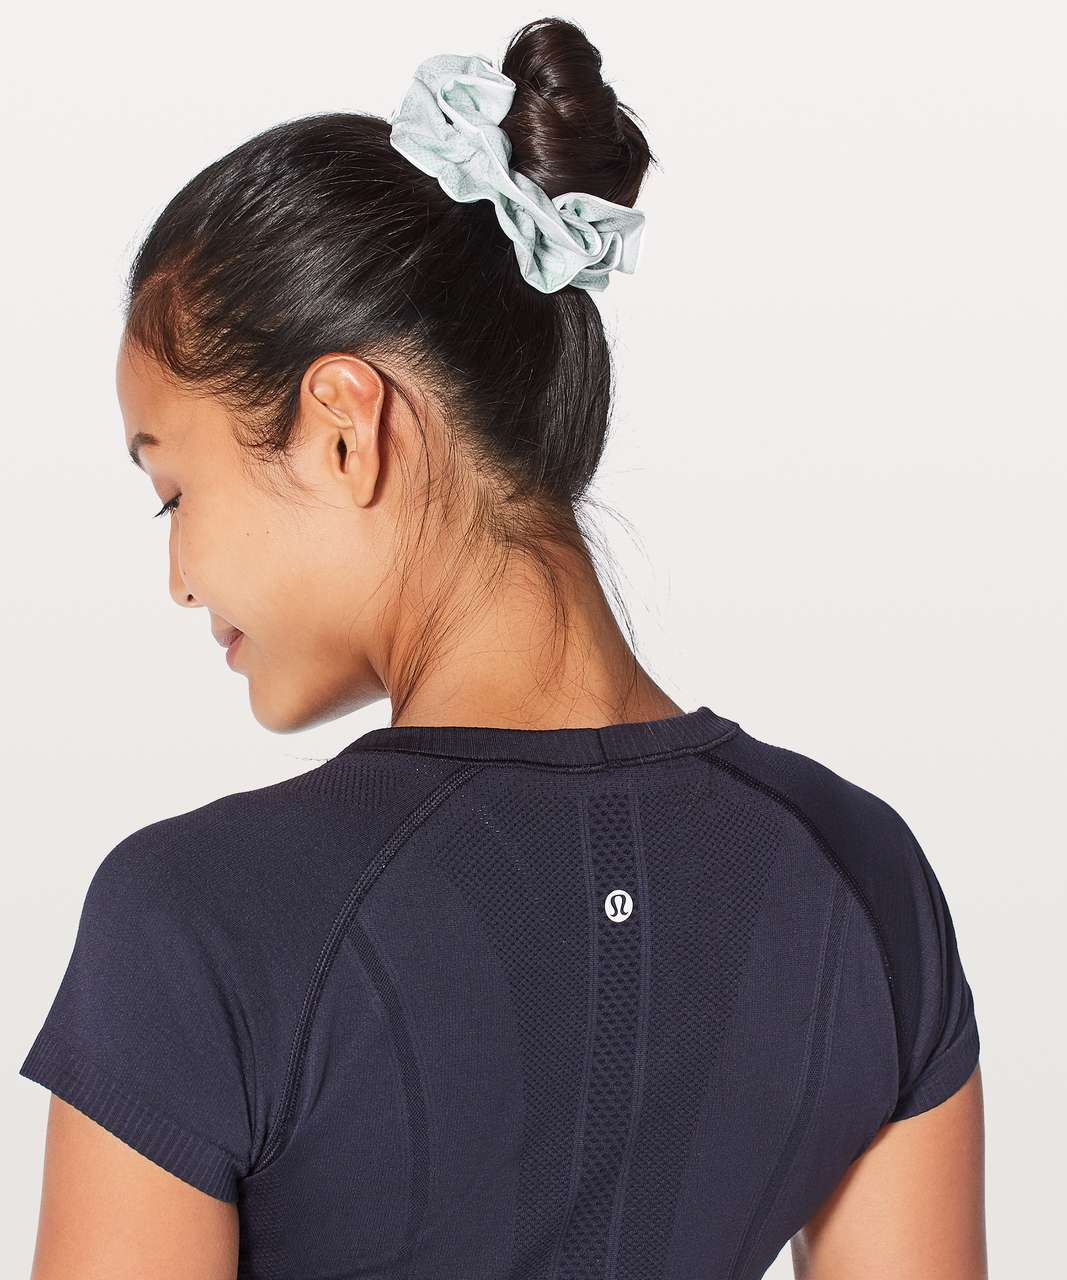 Lululemon Light Locks Scrunchie - Jasmine White Multi